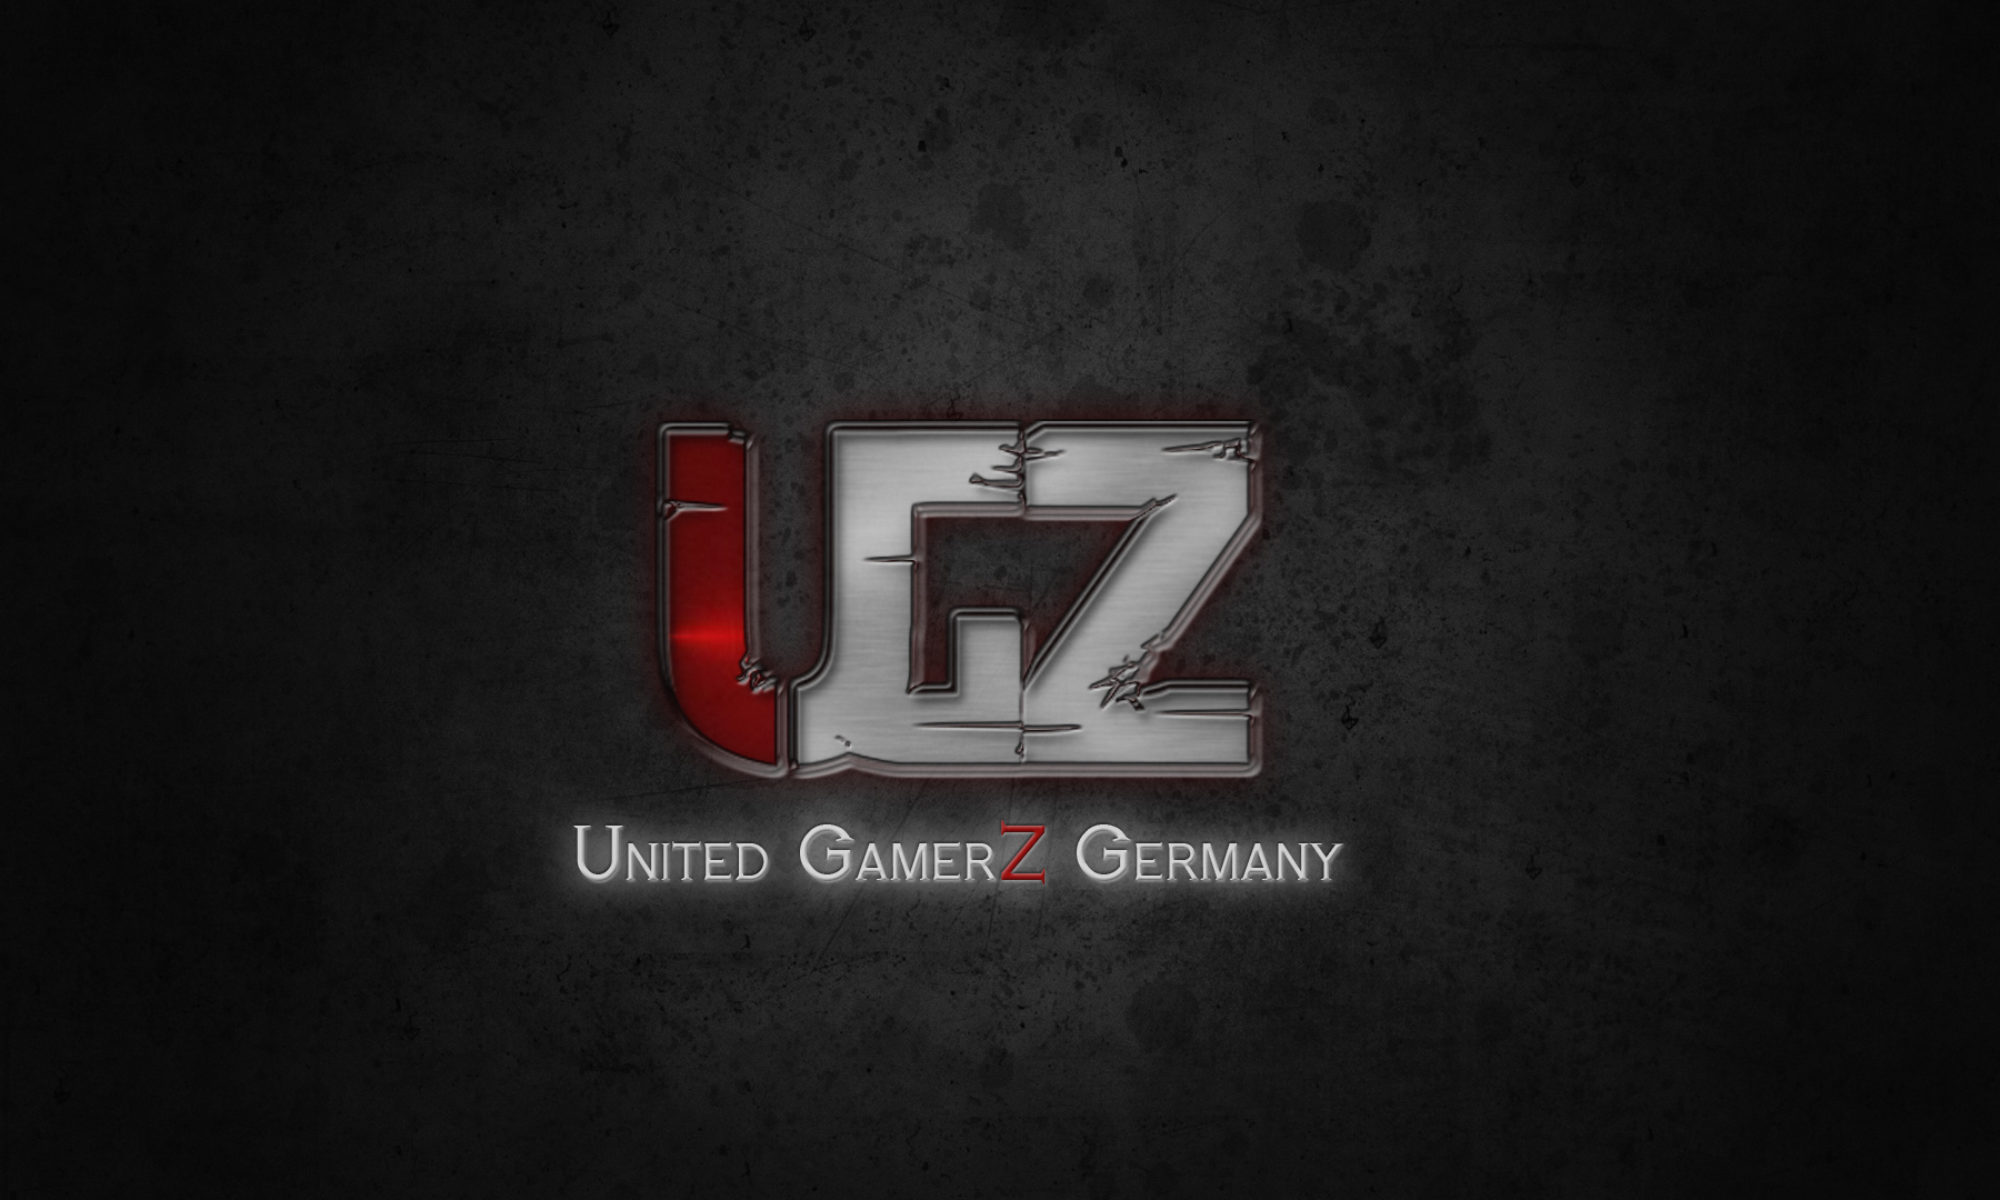 United-GamerZ-Germany.de